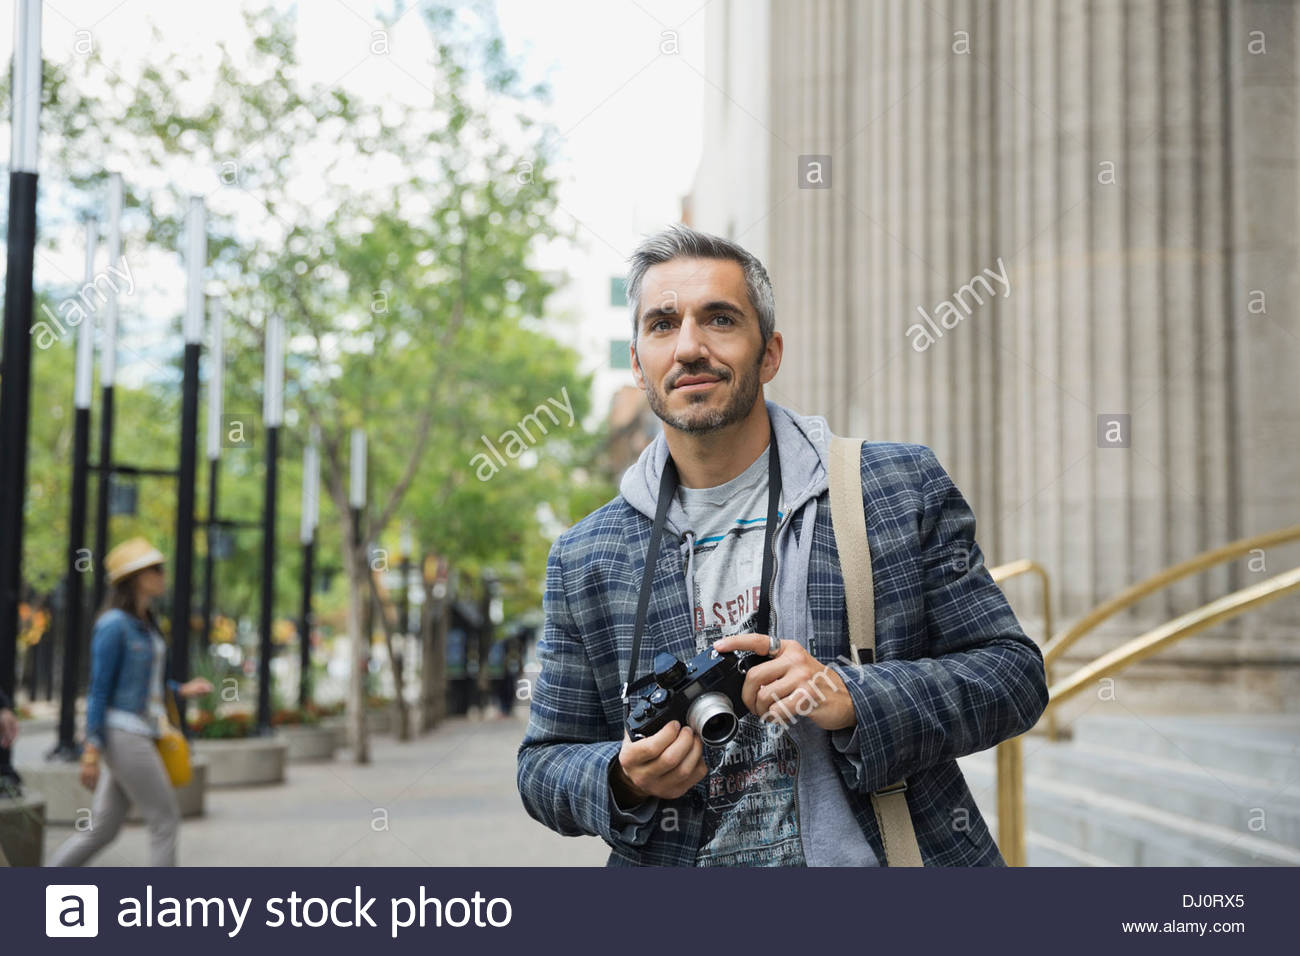 Thoughtful man with camera standing outdoors - Stock Image